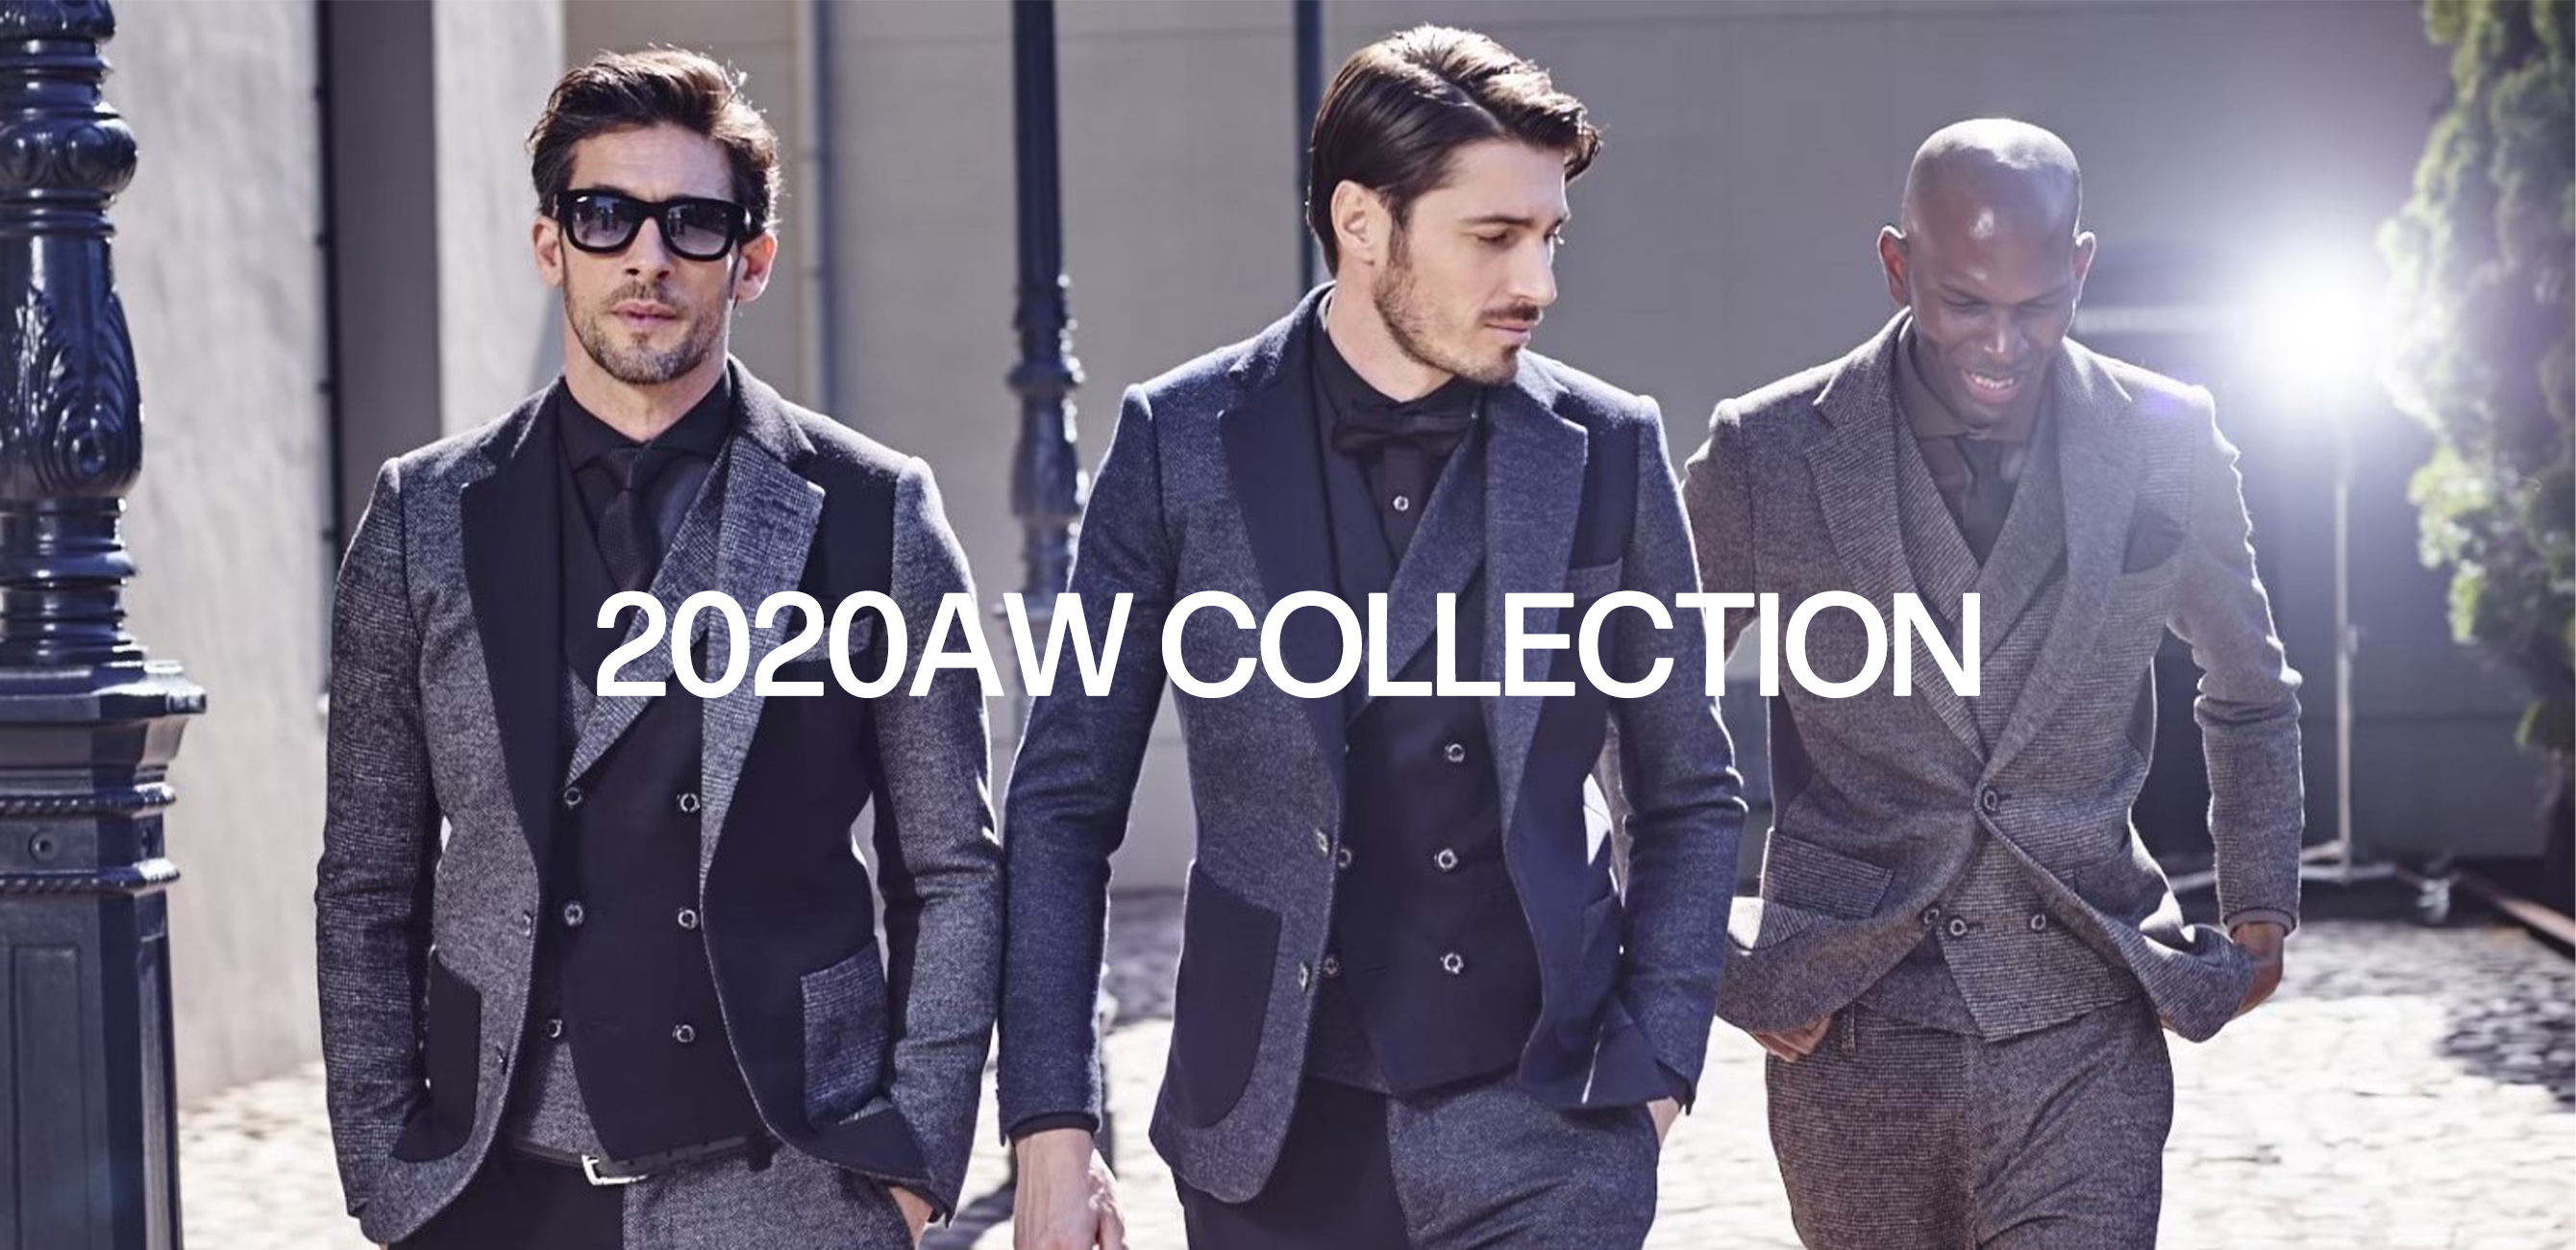 2020AW COLLECTION